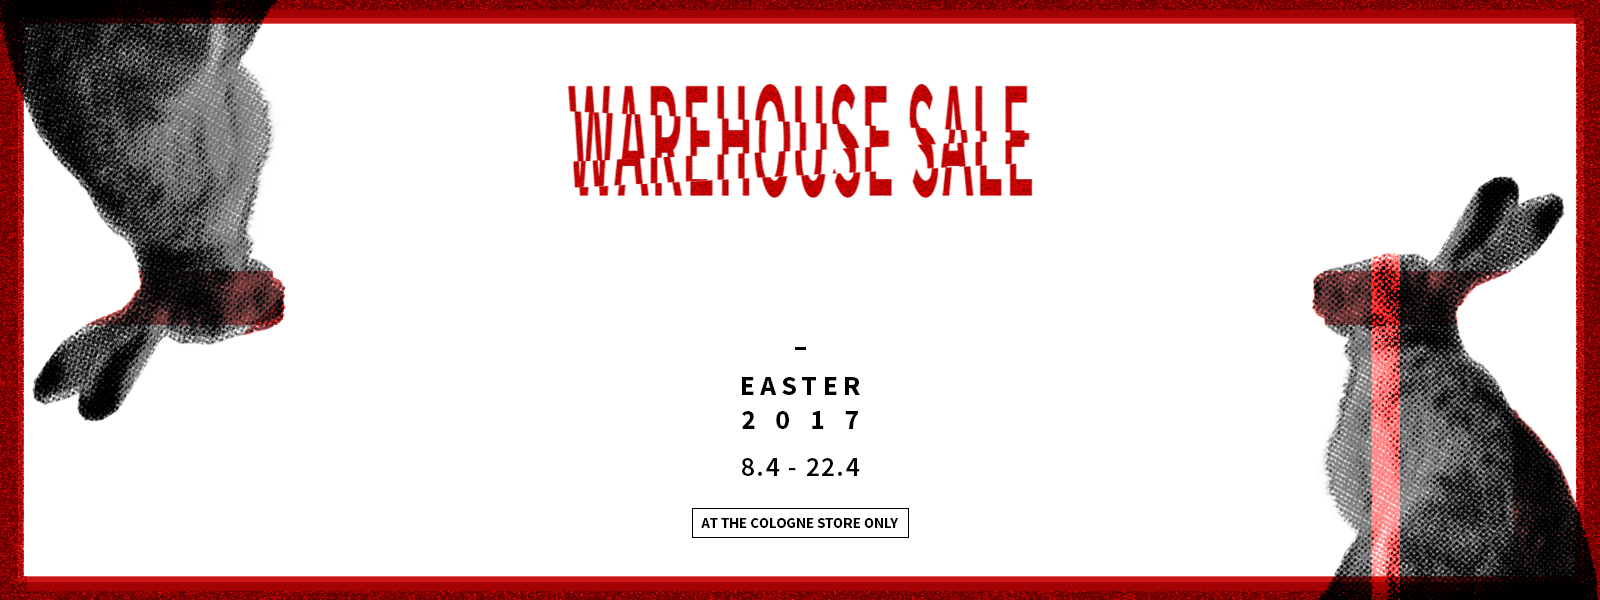 People's Store Warehouse Sale coming soon!